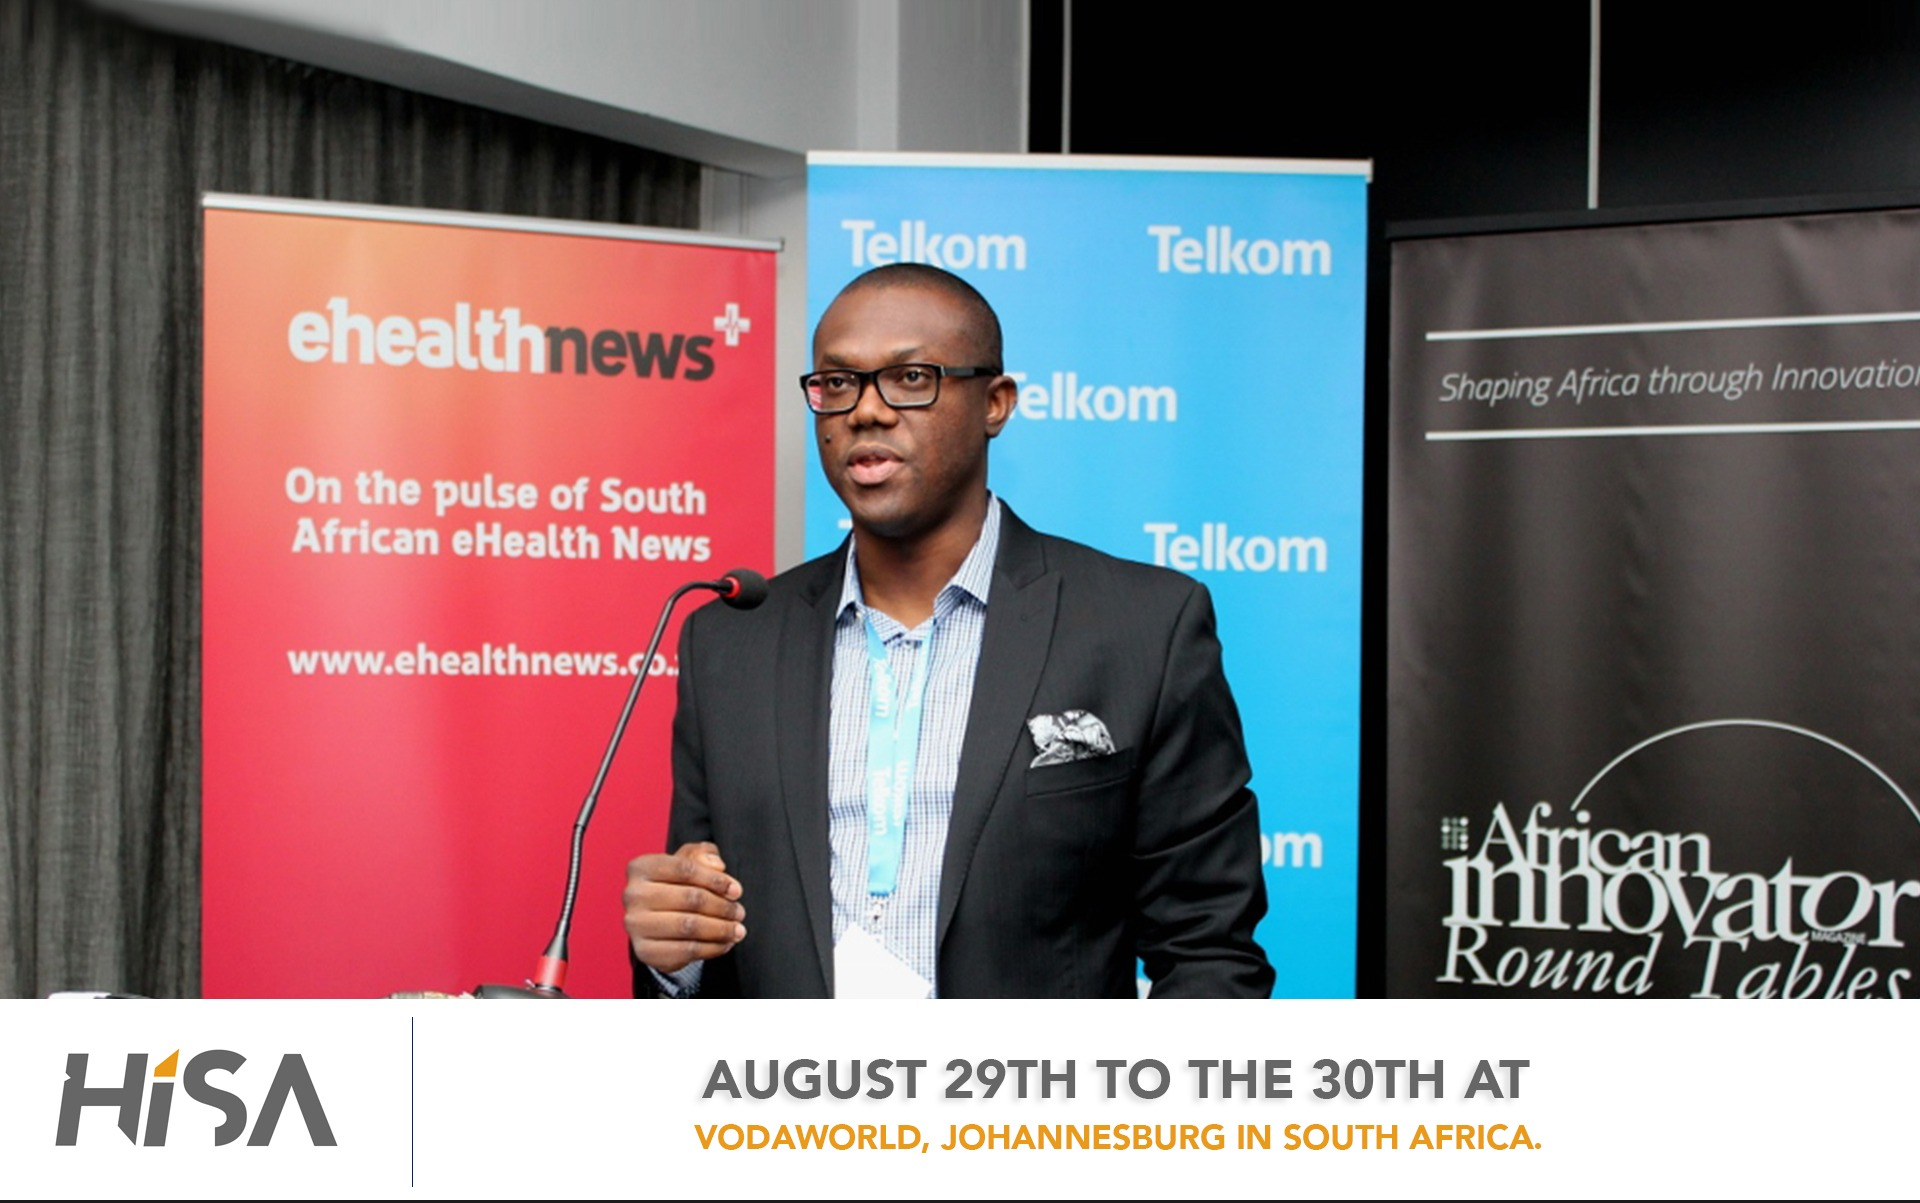 Healthcare Innovation Summit Africa August 29th to the 30th - TGA